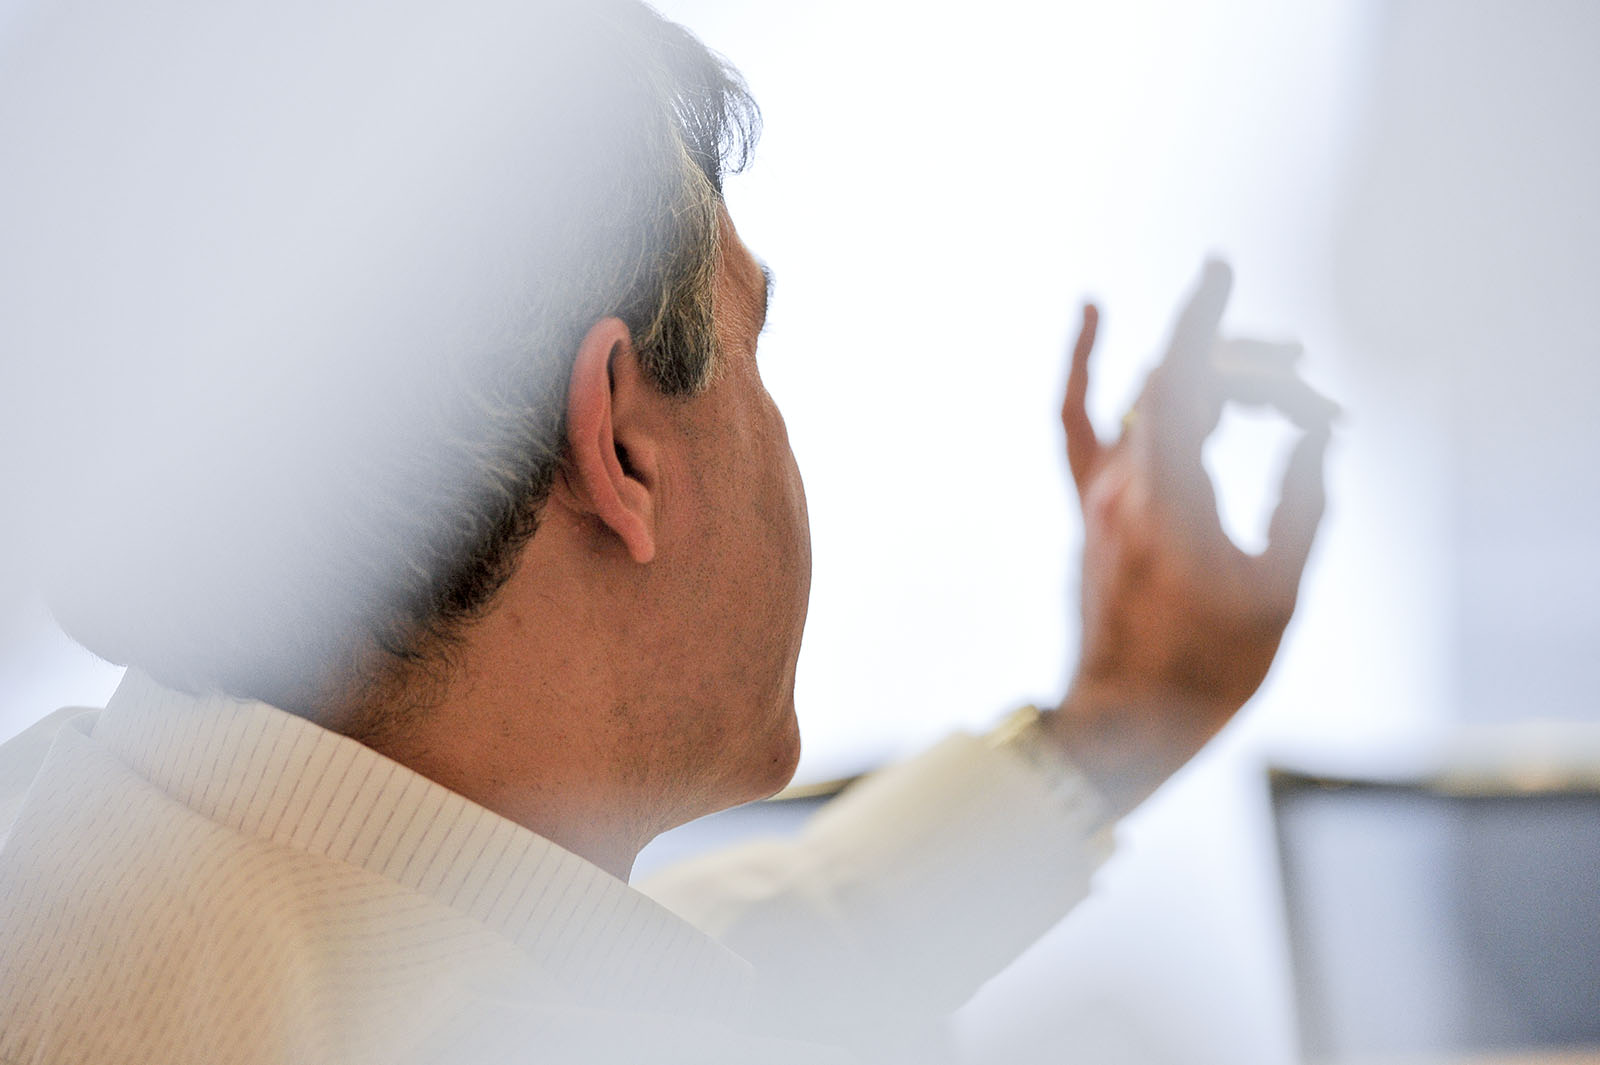 Over the shoulder view of a businessman making a gesture with his hand